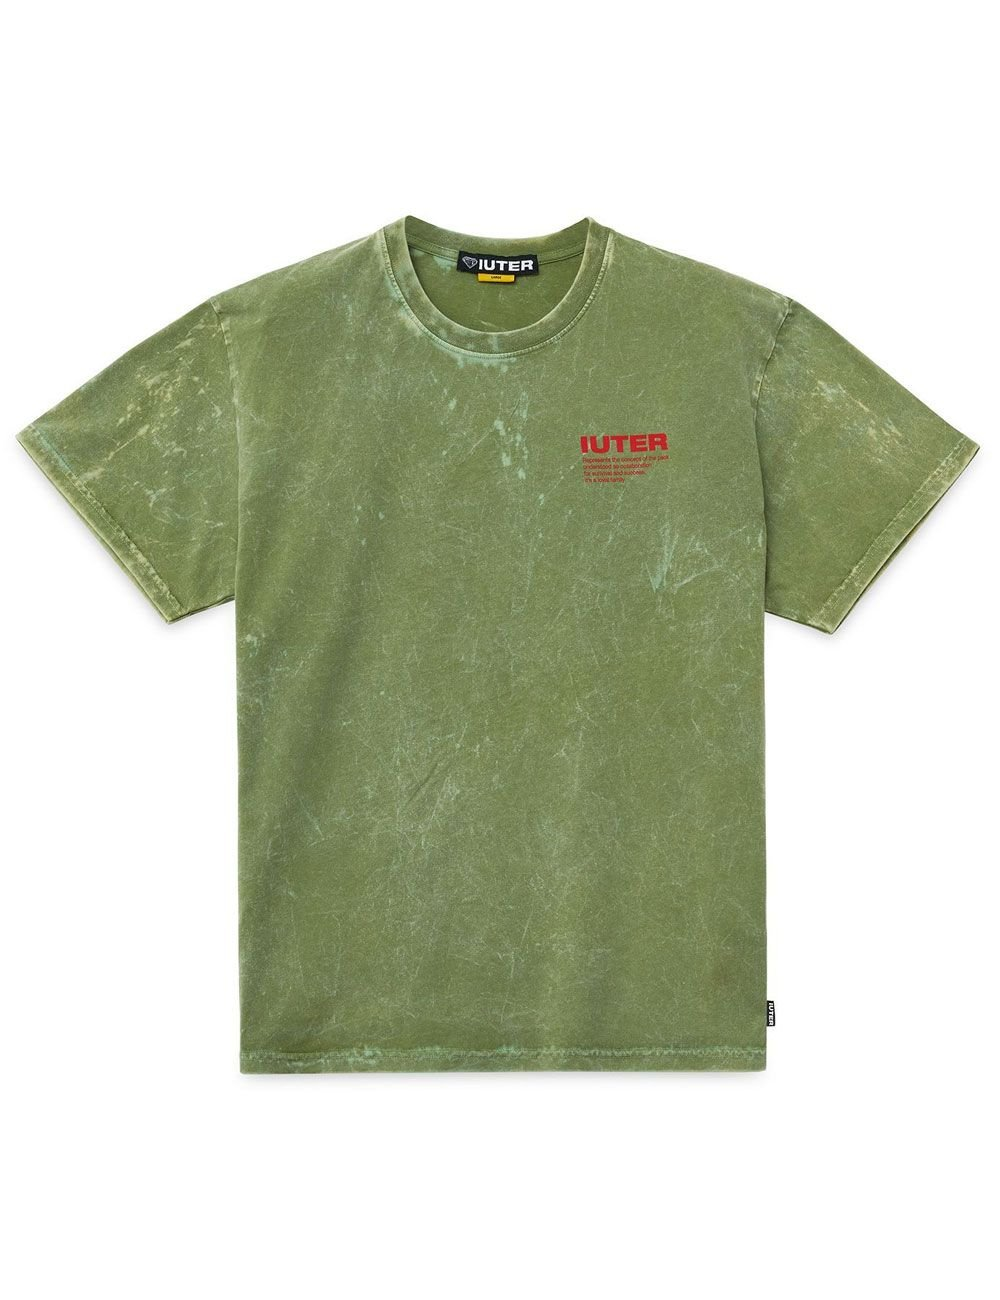 Iuter Disaster t-shirt 21WITS20